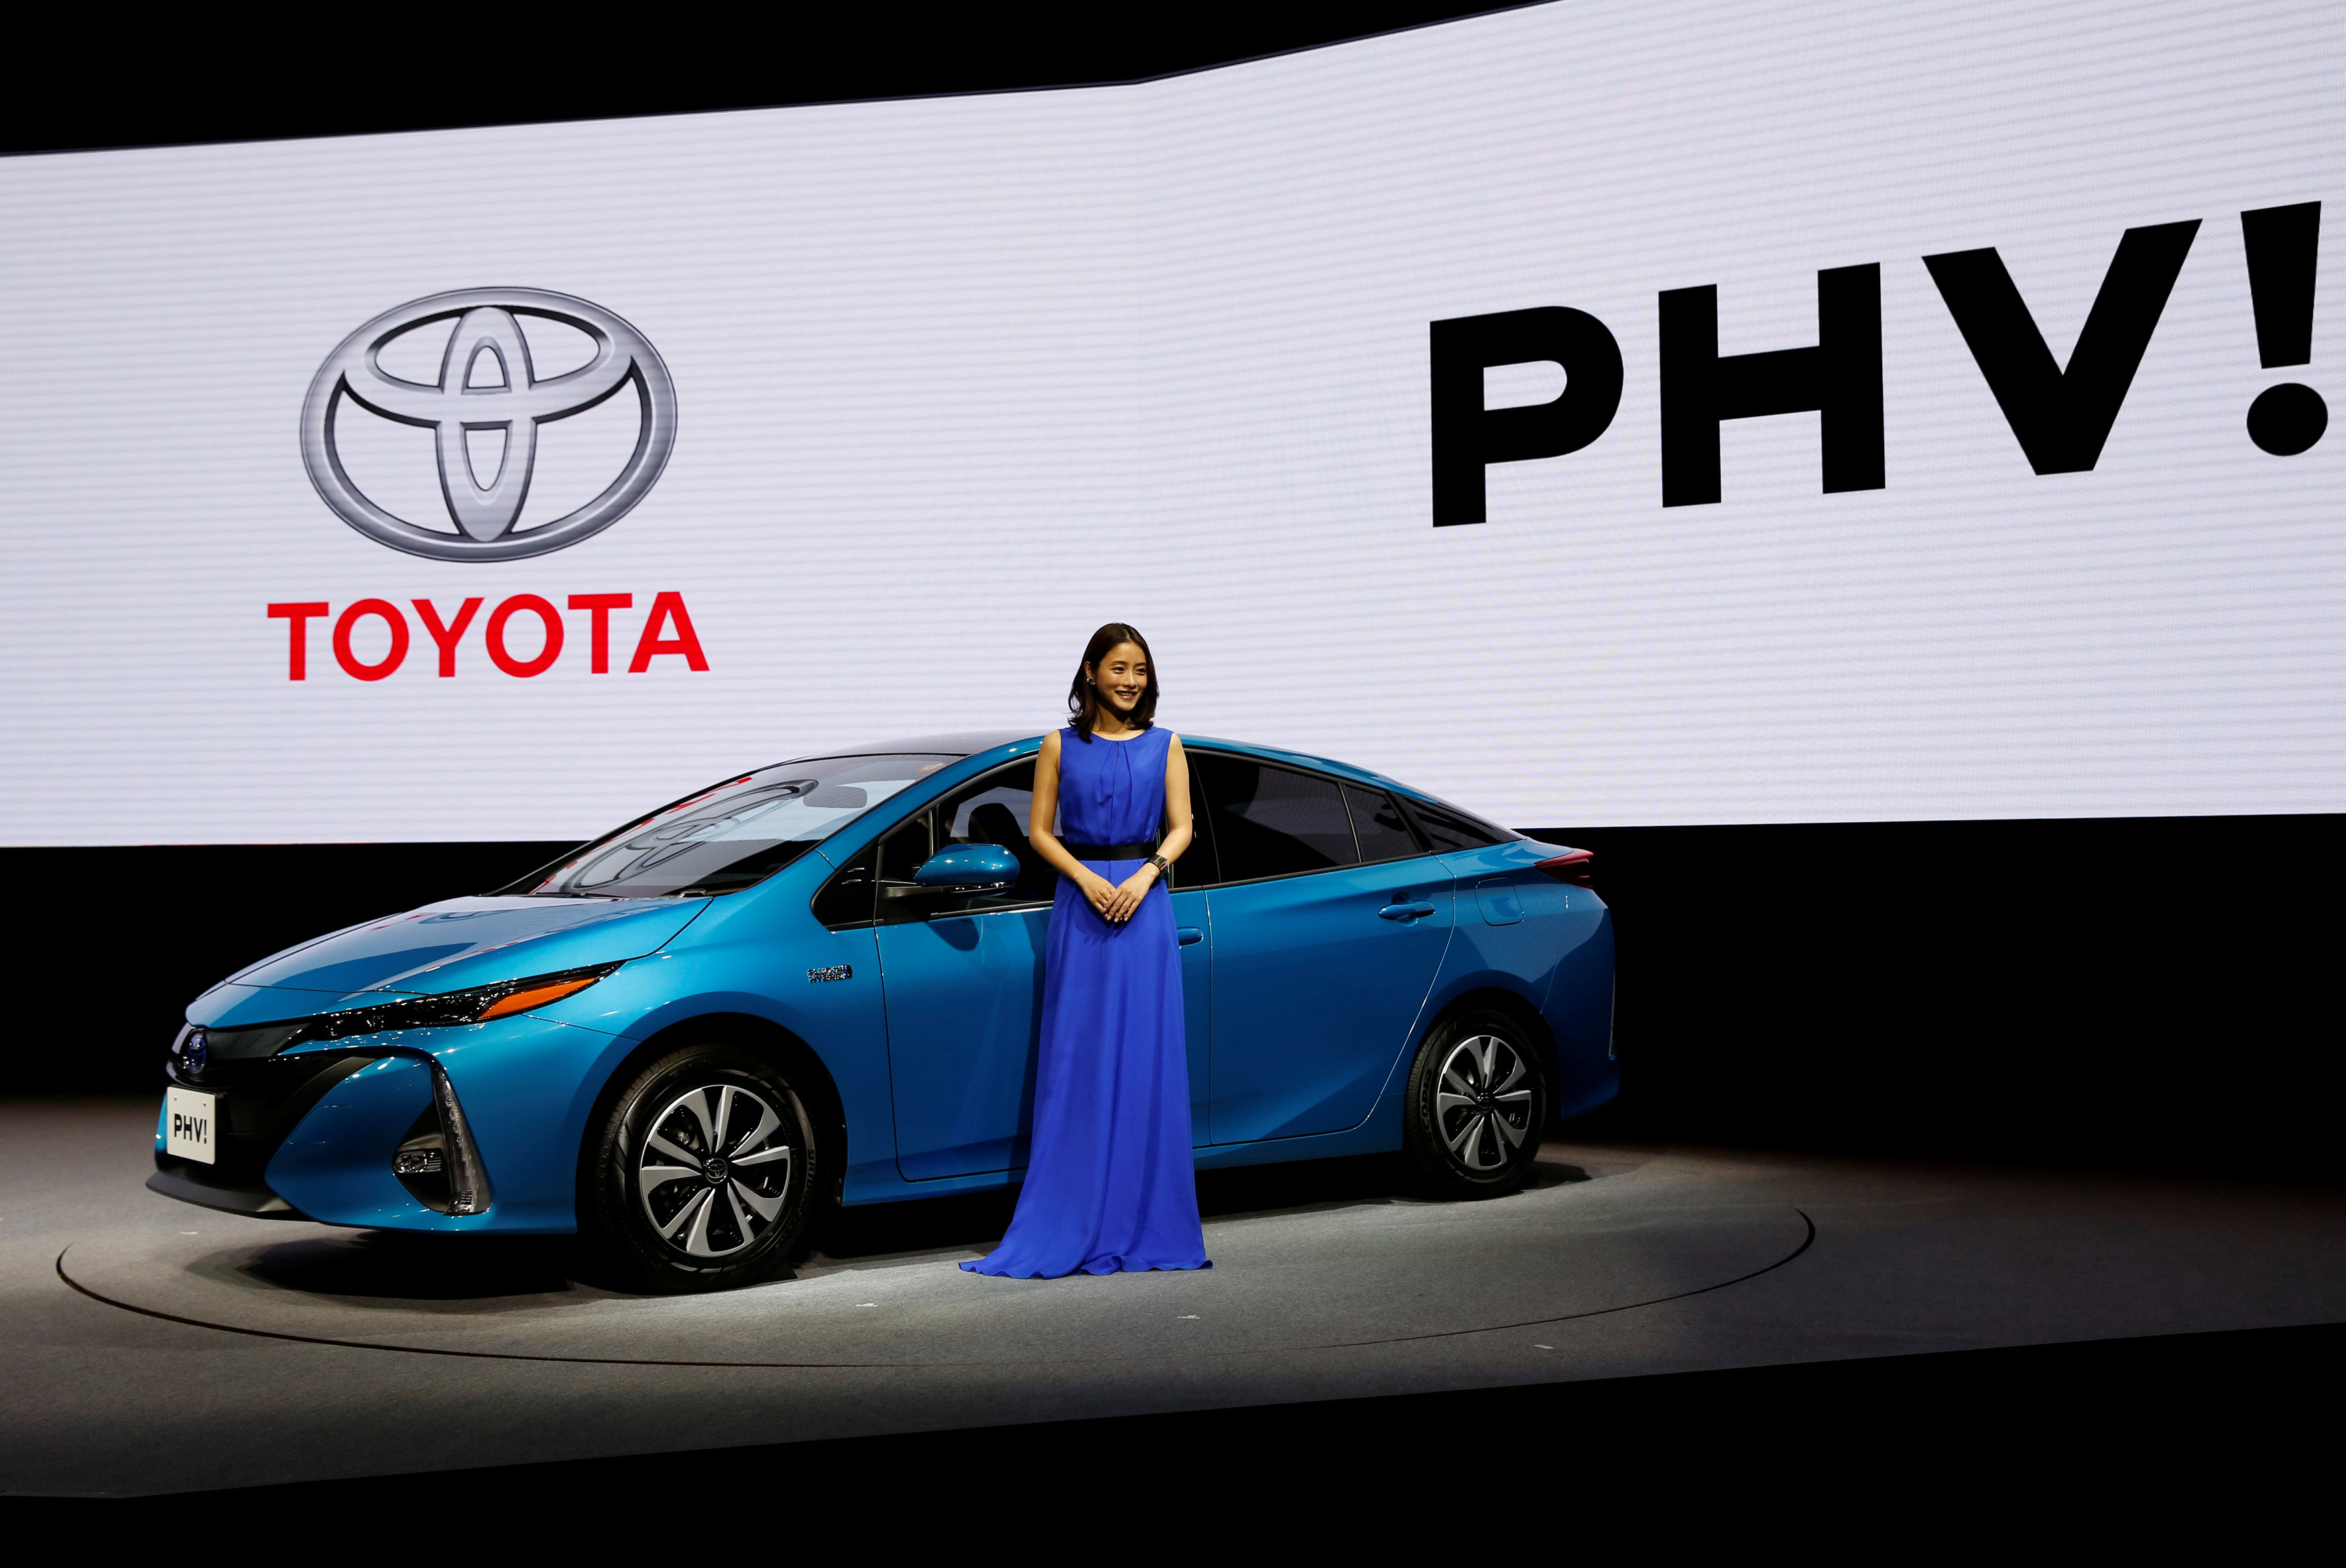 toyota prius case study analysis Toyota prius brand is studied in terms of its swot analysis, competitors segmentation, targeting and positining(stp) have also been covered along with usp and tagline.